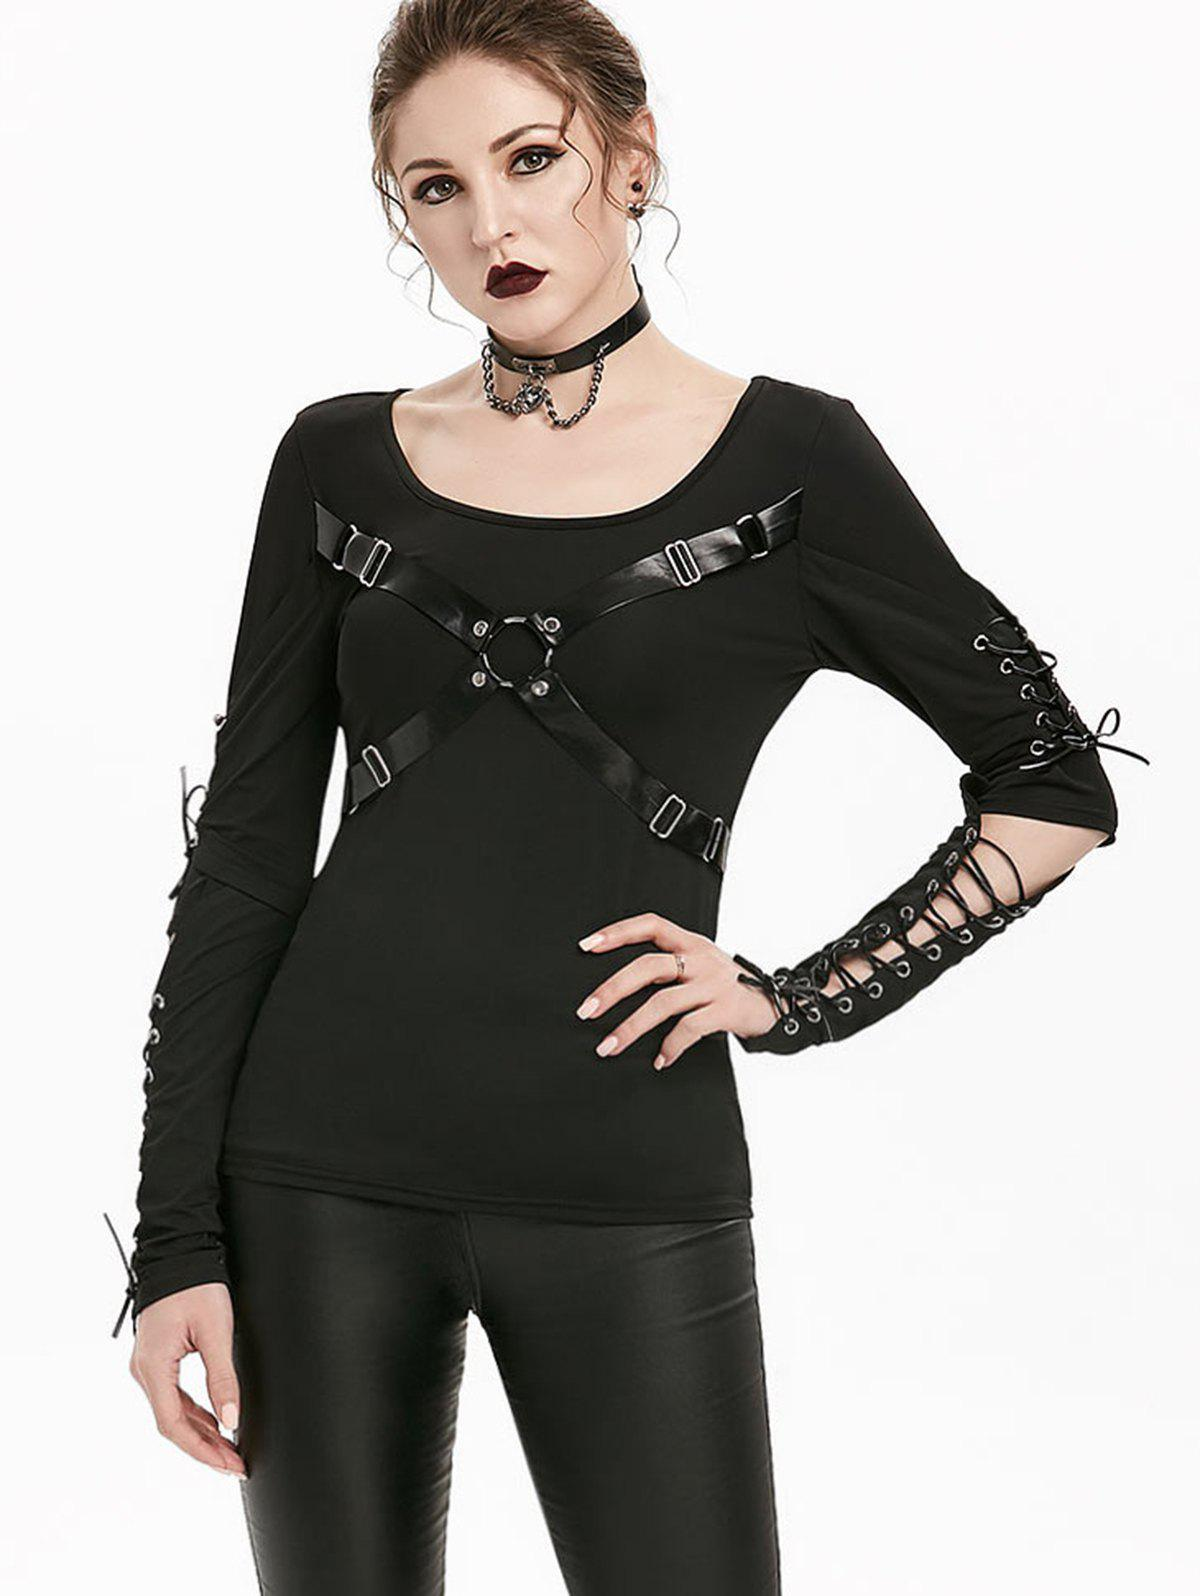 Cut Out Elbow Lace-up Harness Insert Gothic T-shirt - BLACK L